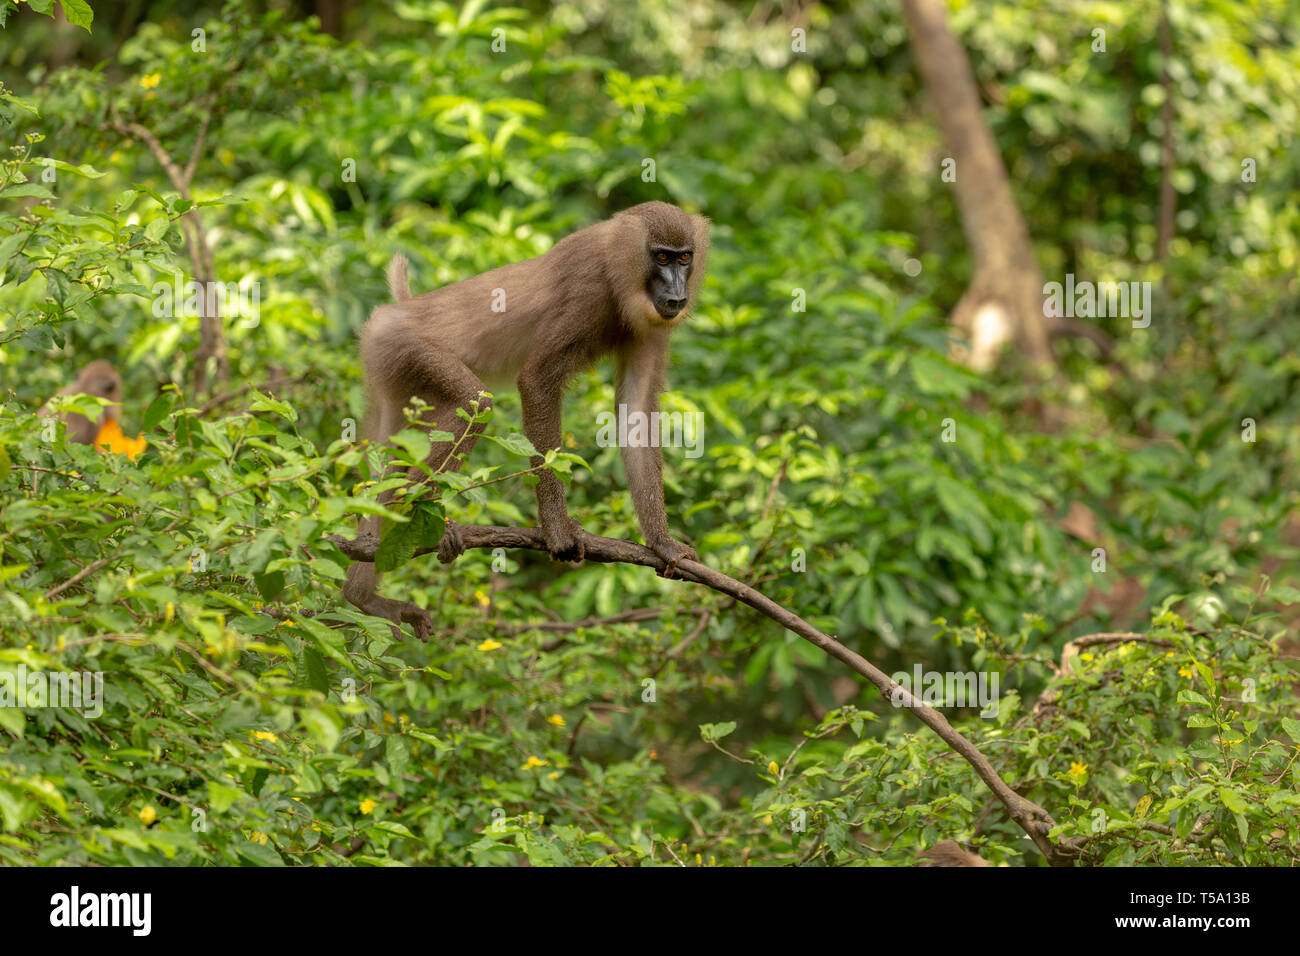 Juvenile drill monkey - Stock Image